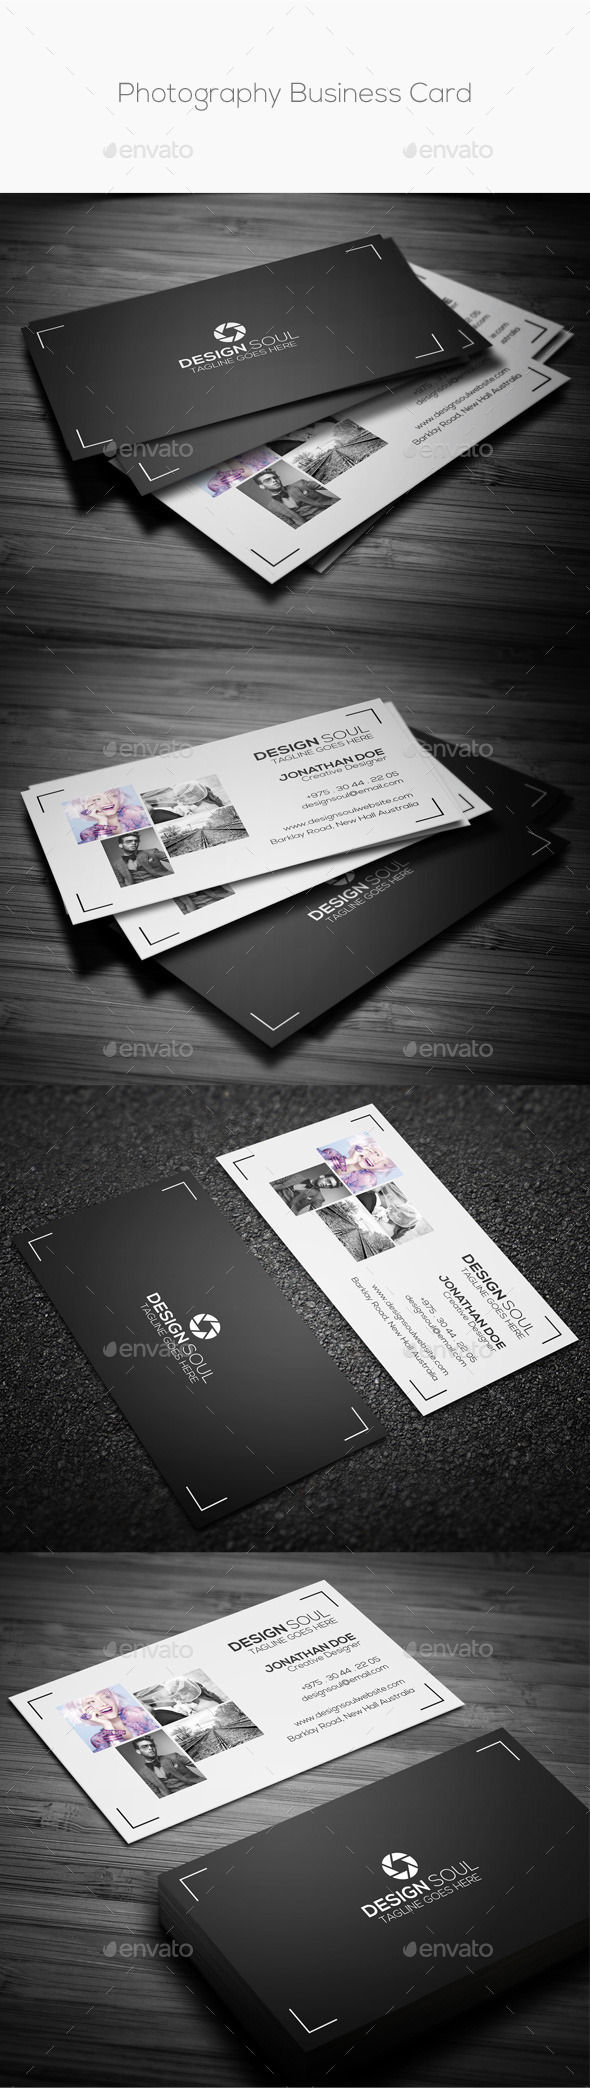 GraphicRiver Photography Business Card 9992557